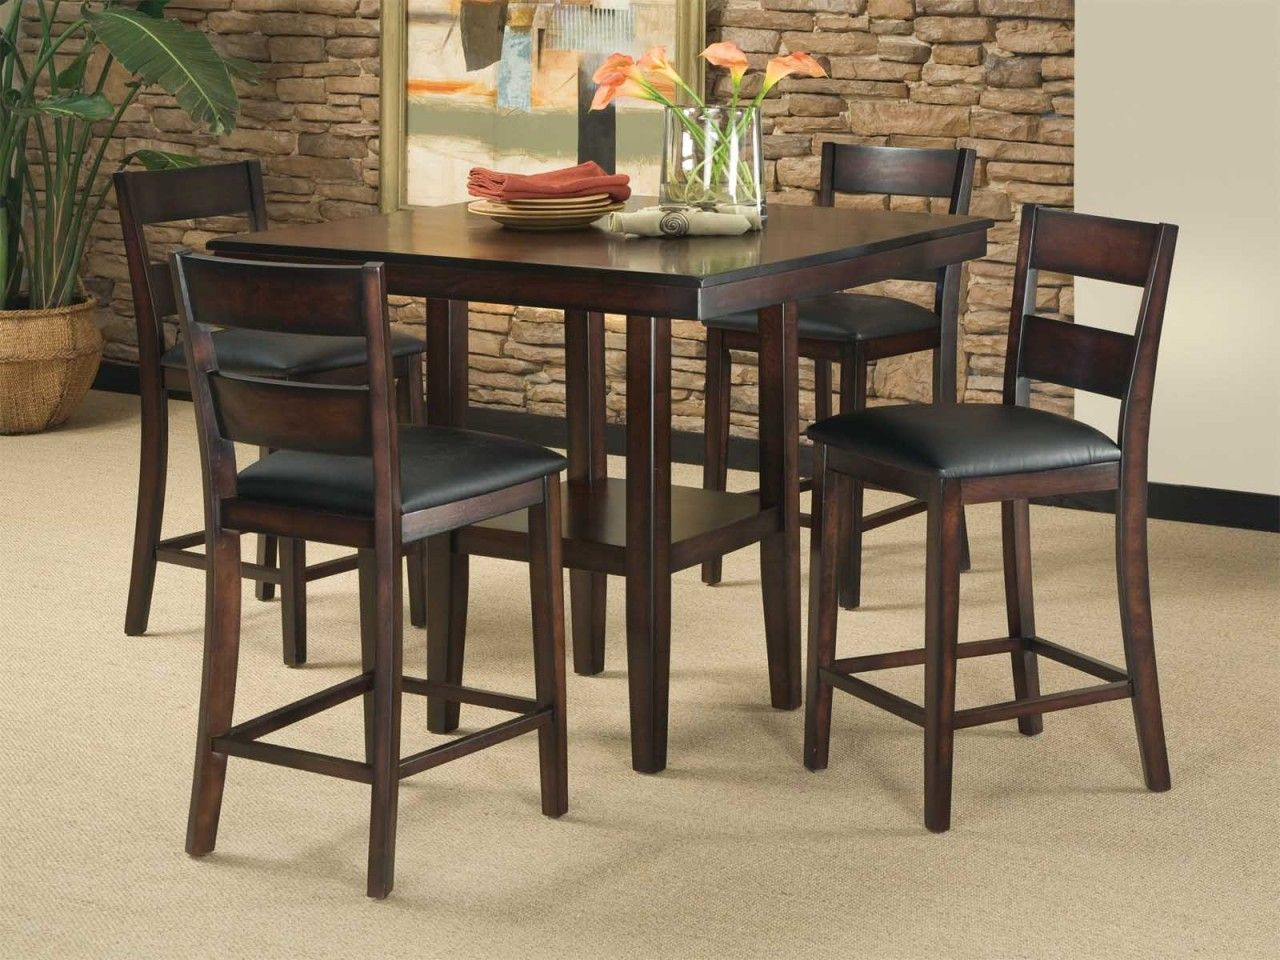 Standard Furniture Pendelton Counter Height Table And Four Stools In Dark  Cherry My New Kitchen Table!